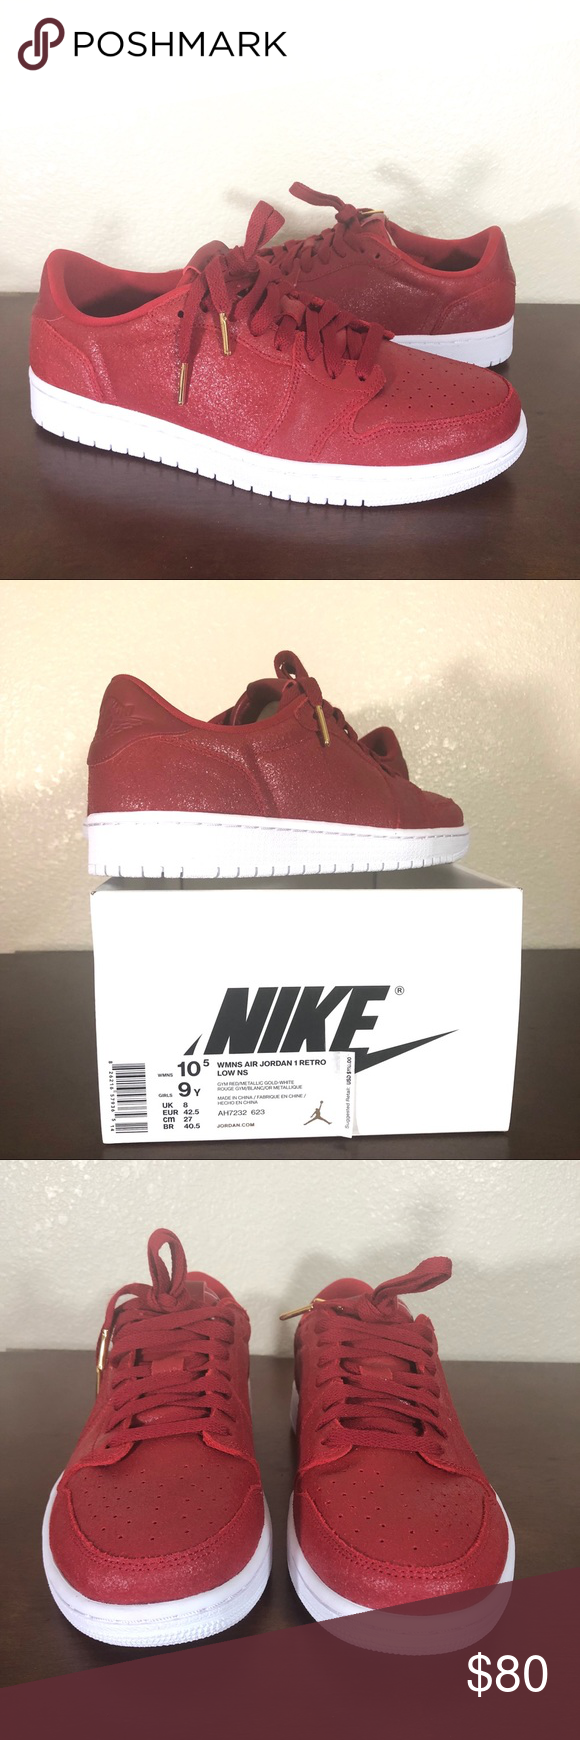 354df9b04d9e Women s Air Jordan 1 Retro Low NS Gym Red Sz 10.5 Women s Air Jordan 1  Retro Low NS  No Swoosh  Color  Gym Red Metallic Gold White Style Number   AH7232 623 ...